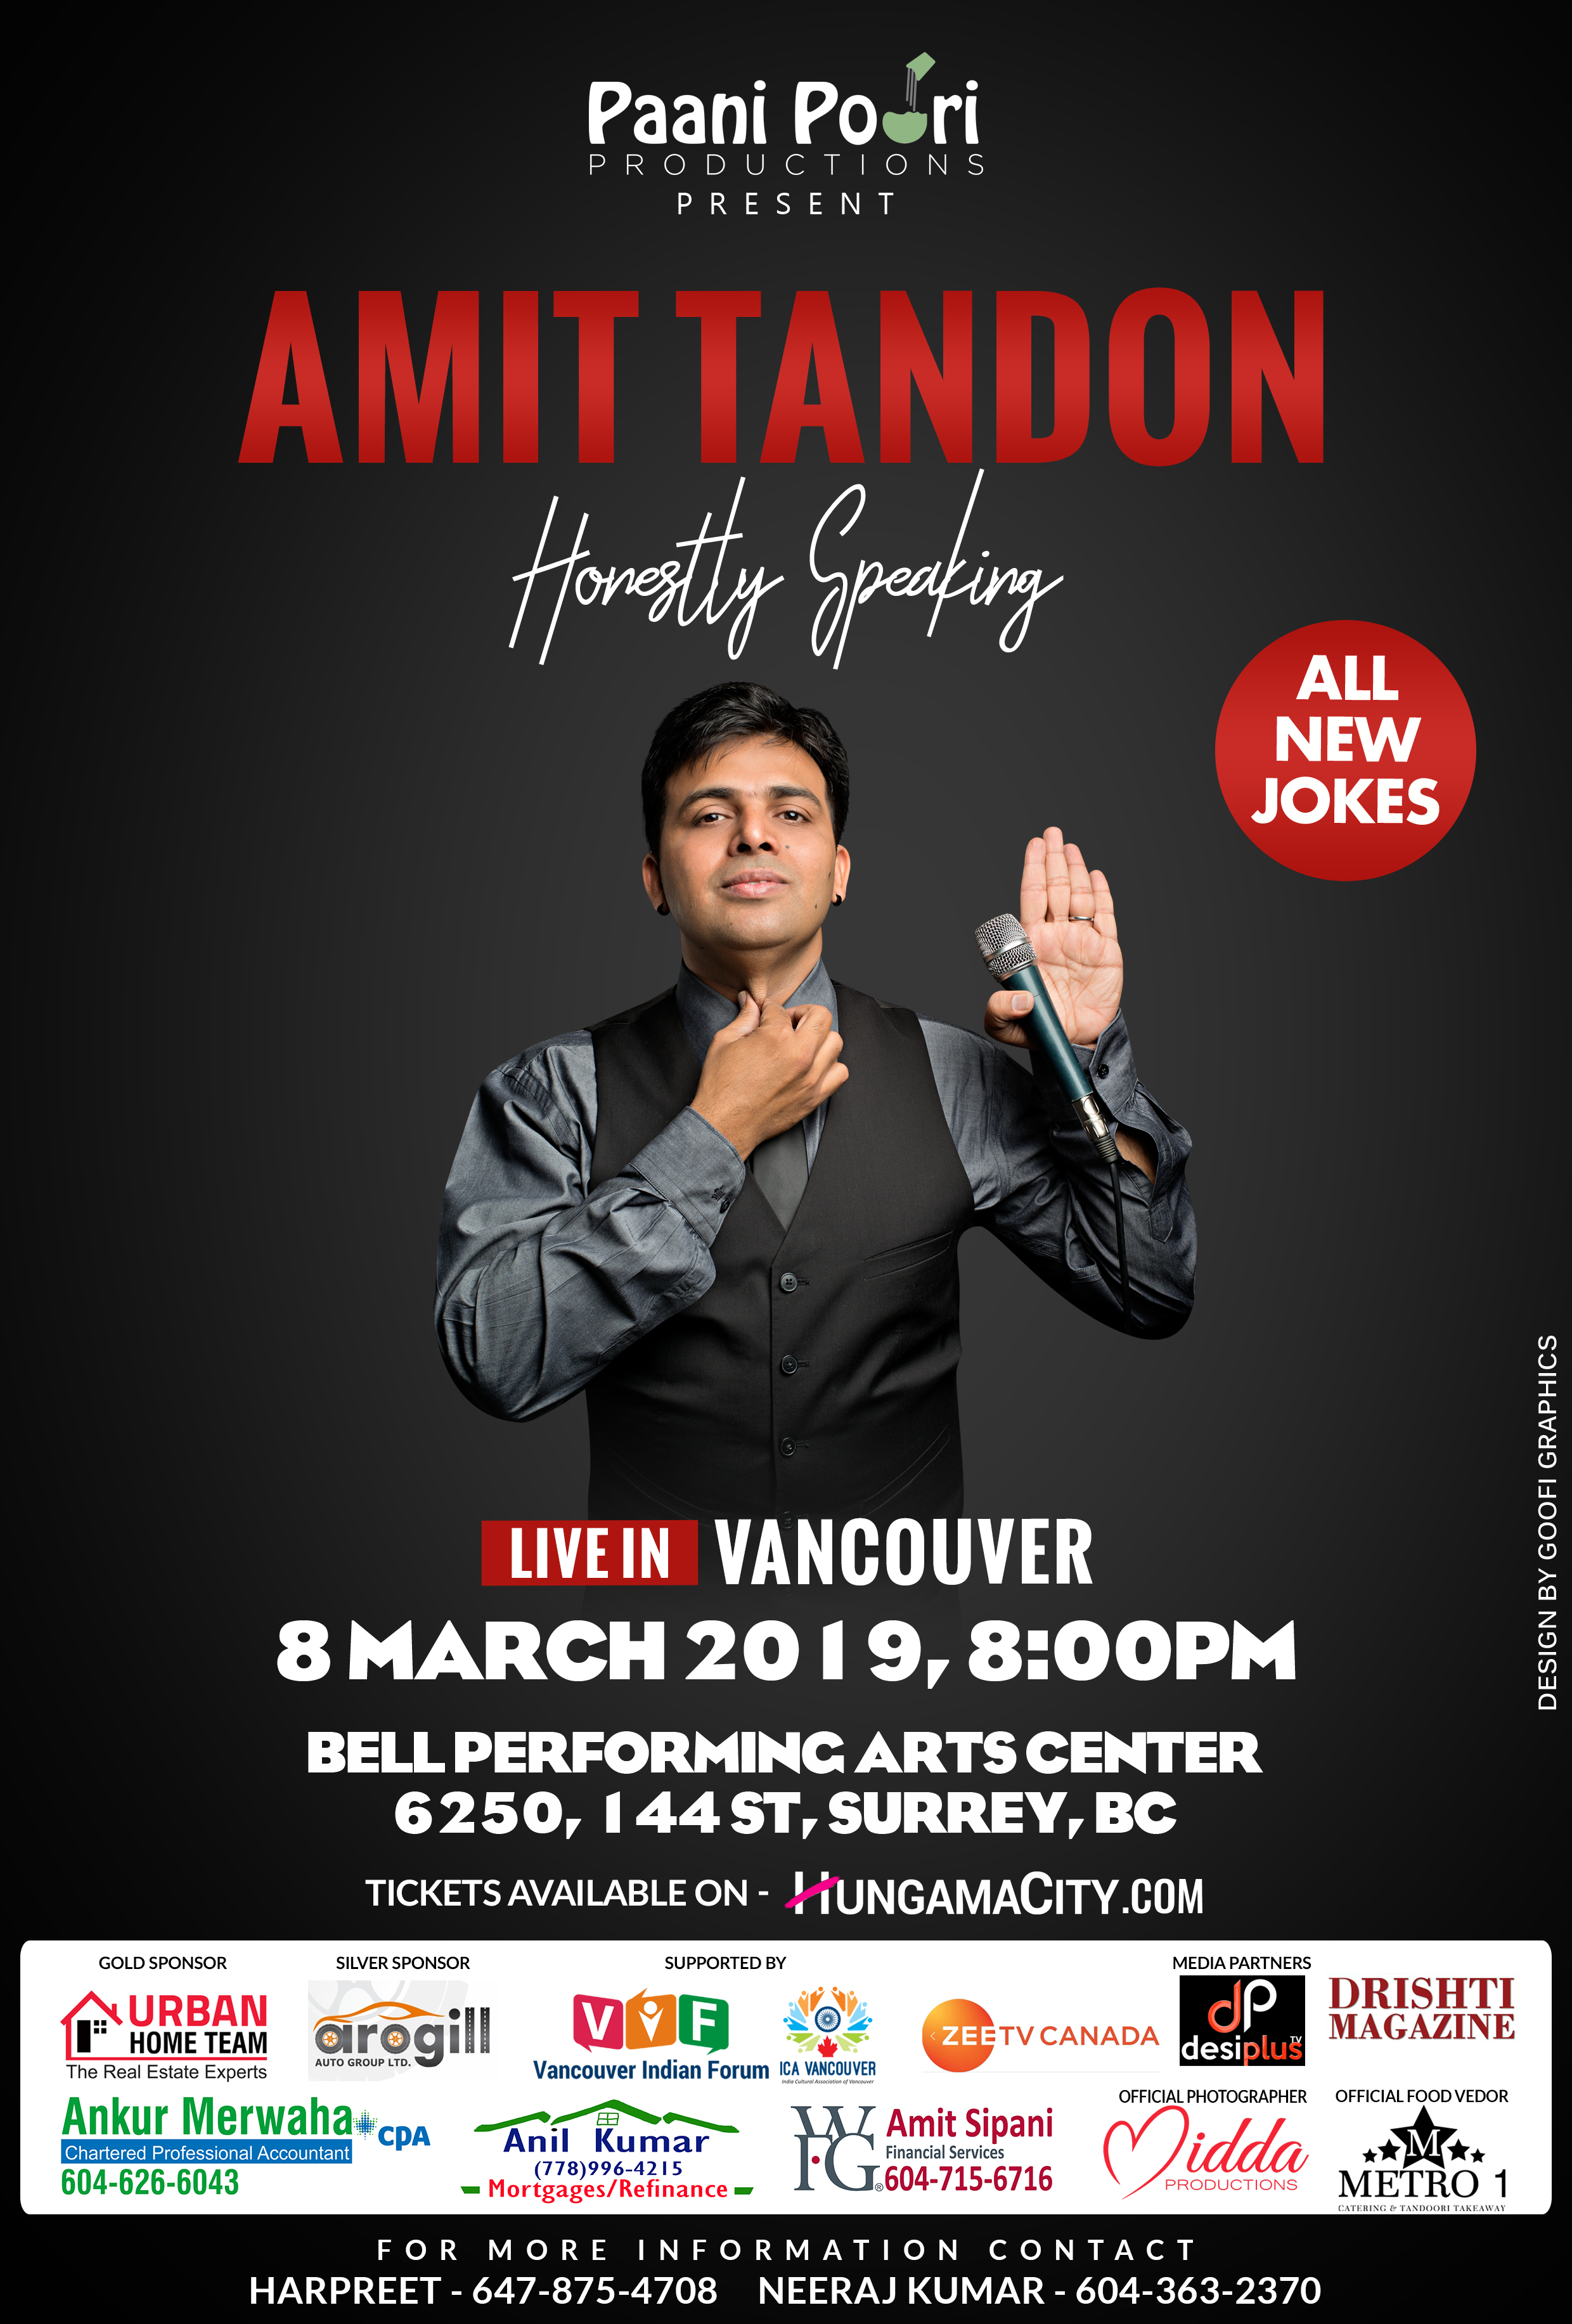 Amit-Tandon-Honestly-Speaking-in-Vancouver-Poster-with-Logos